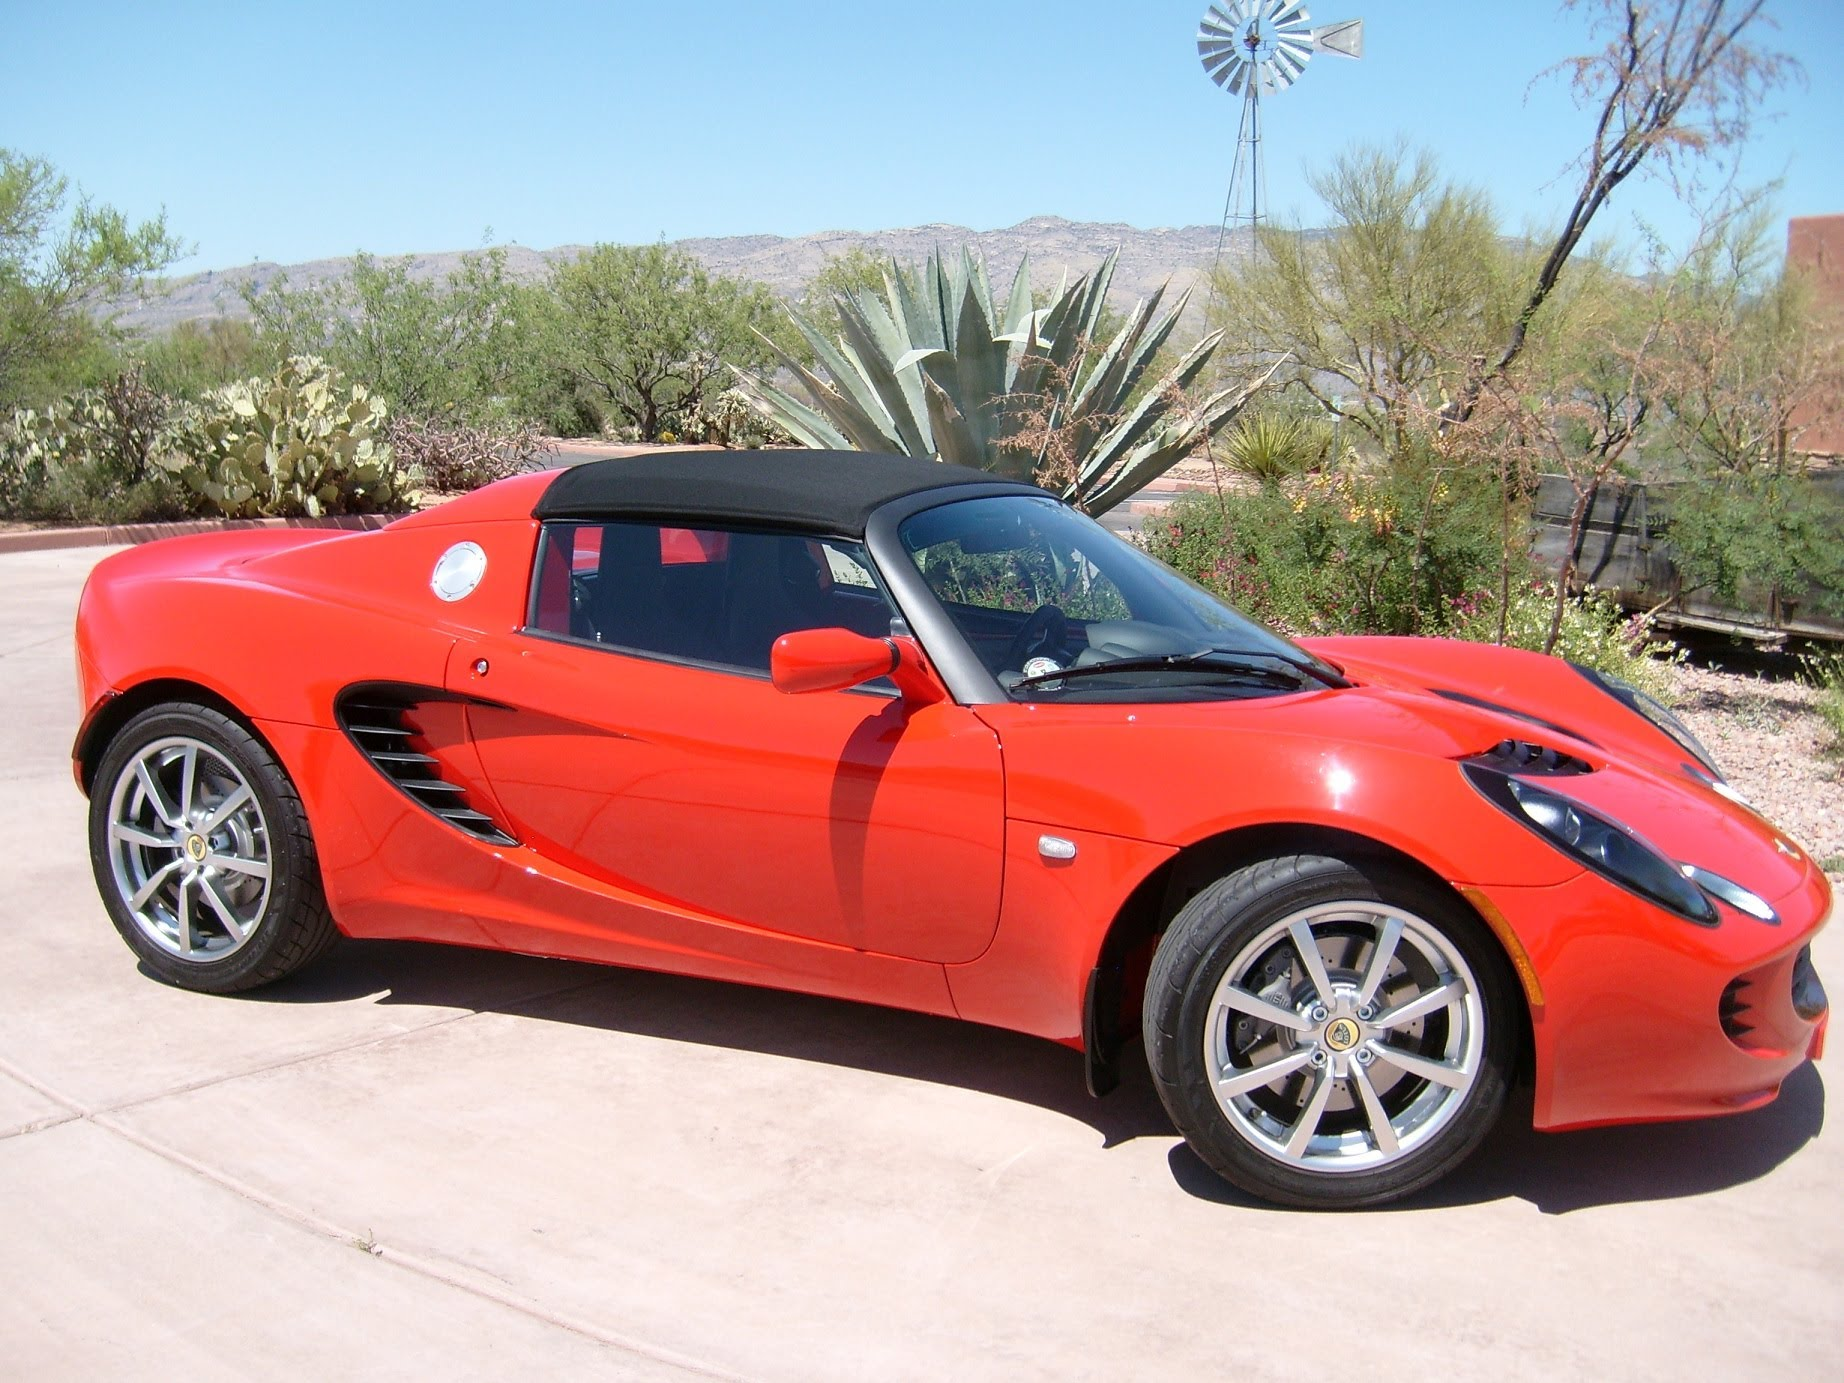 How to change oil on a 2009, 2010, 2011 Lotus Elise 1